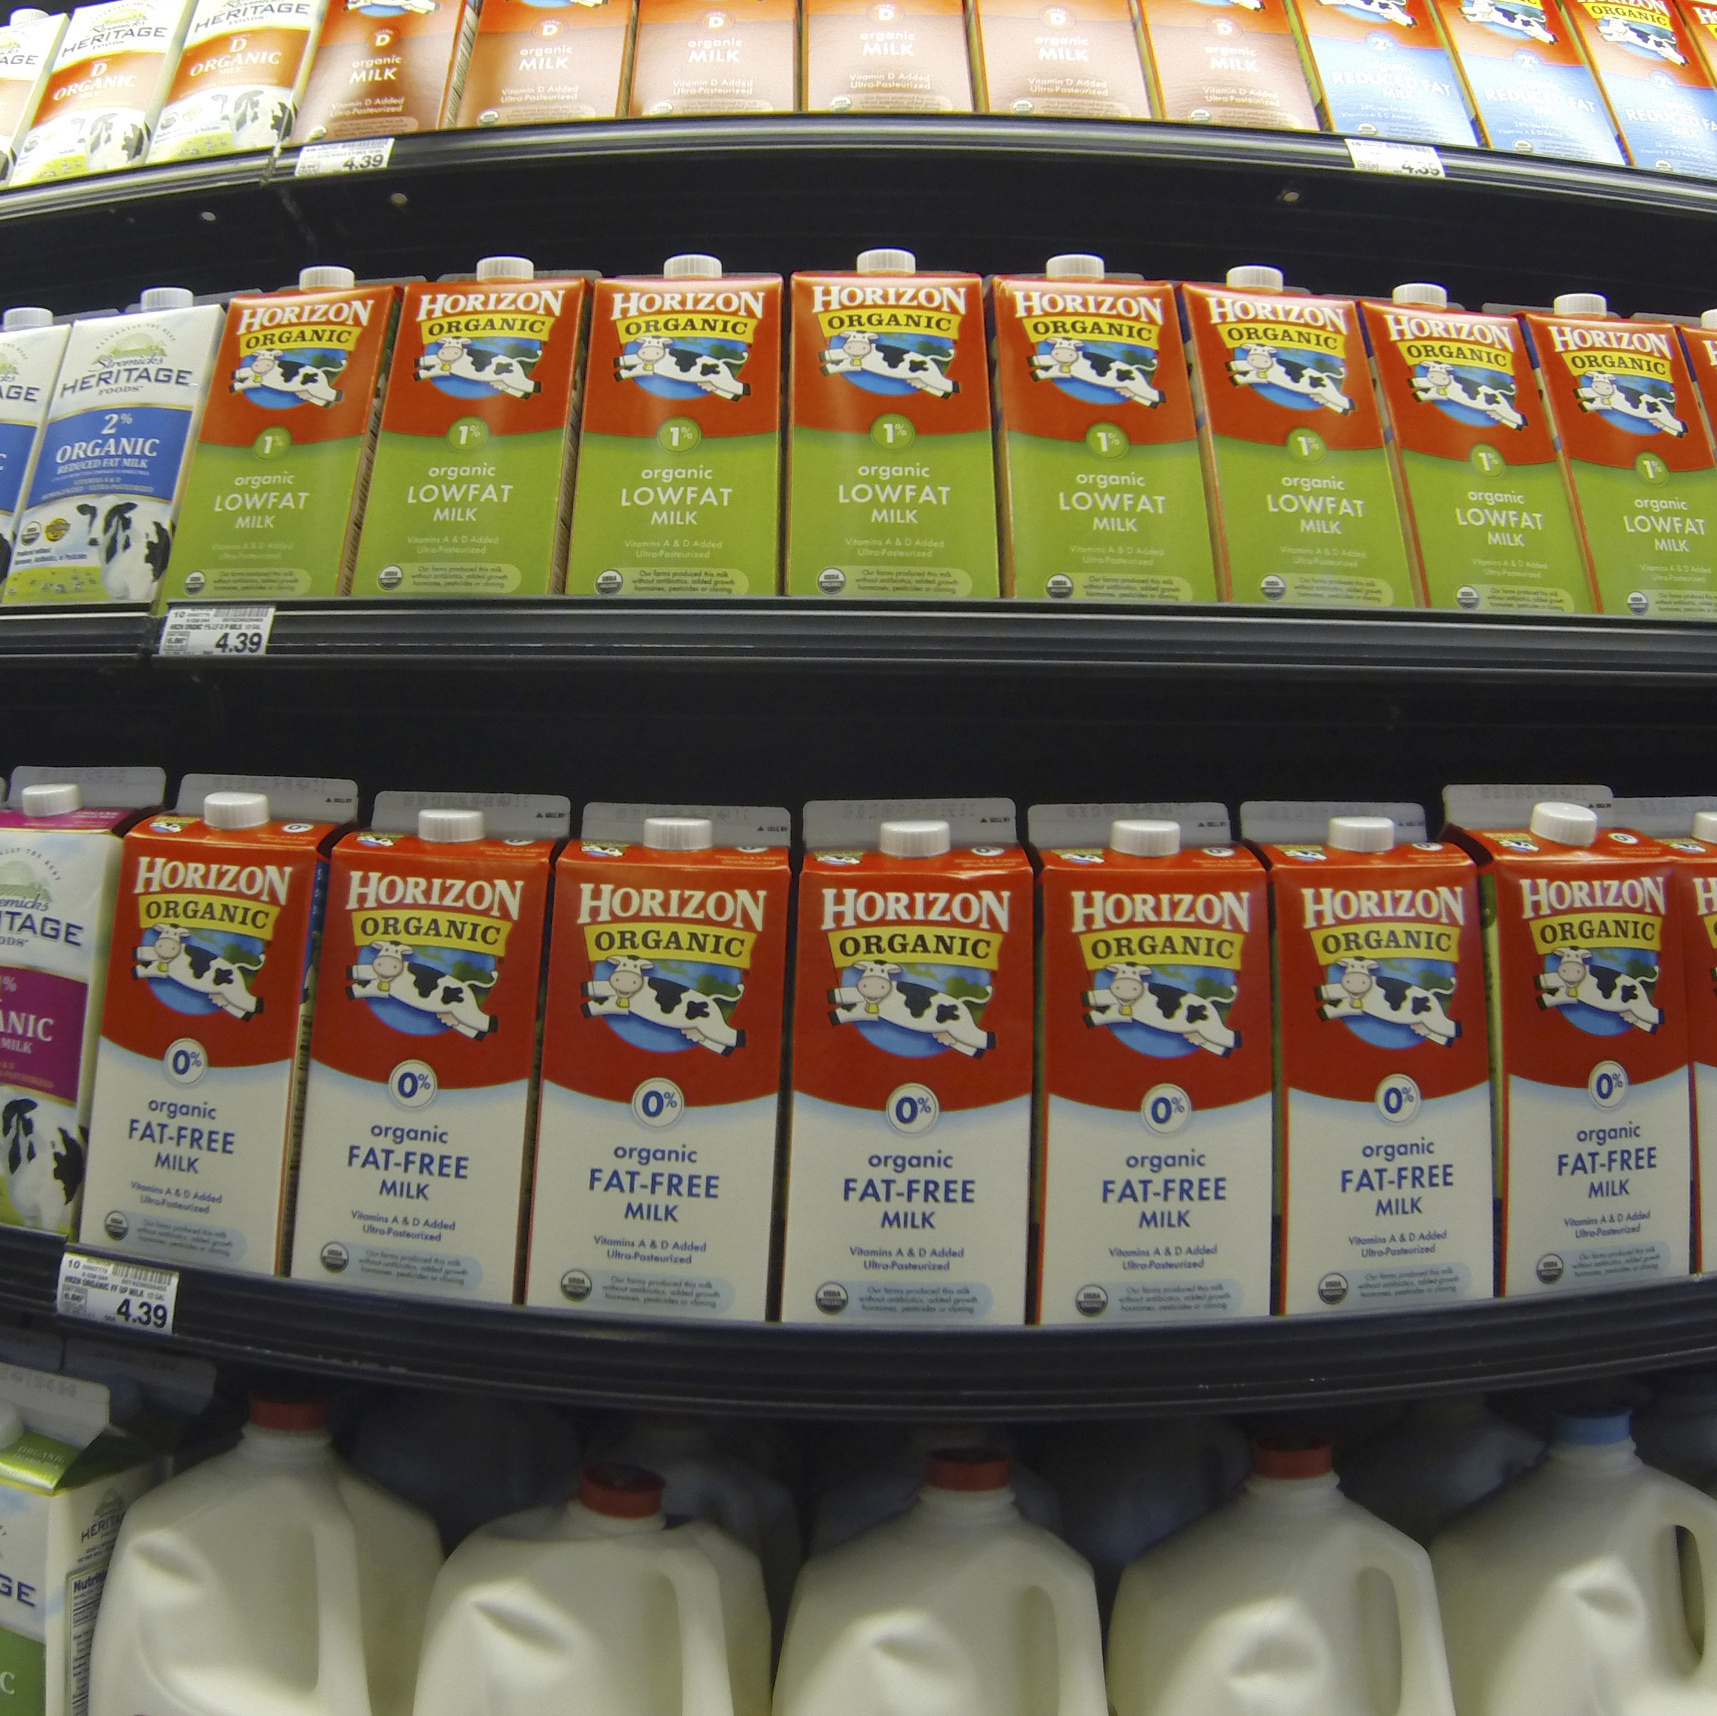 Sticker shock in the dairy aisle? Milk prices could spike big time in 2014 if Congress fails to reach a deal on a new farm bill.